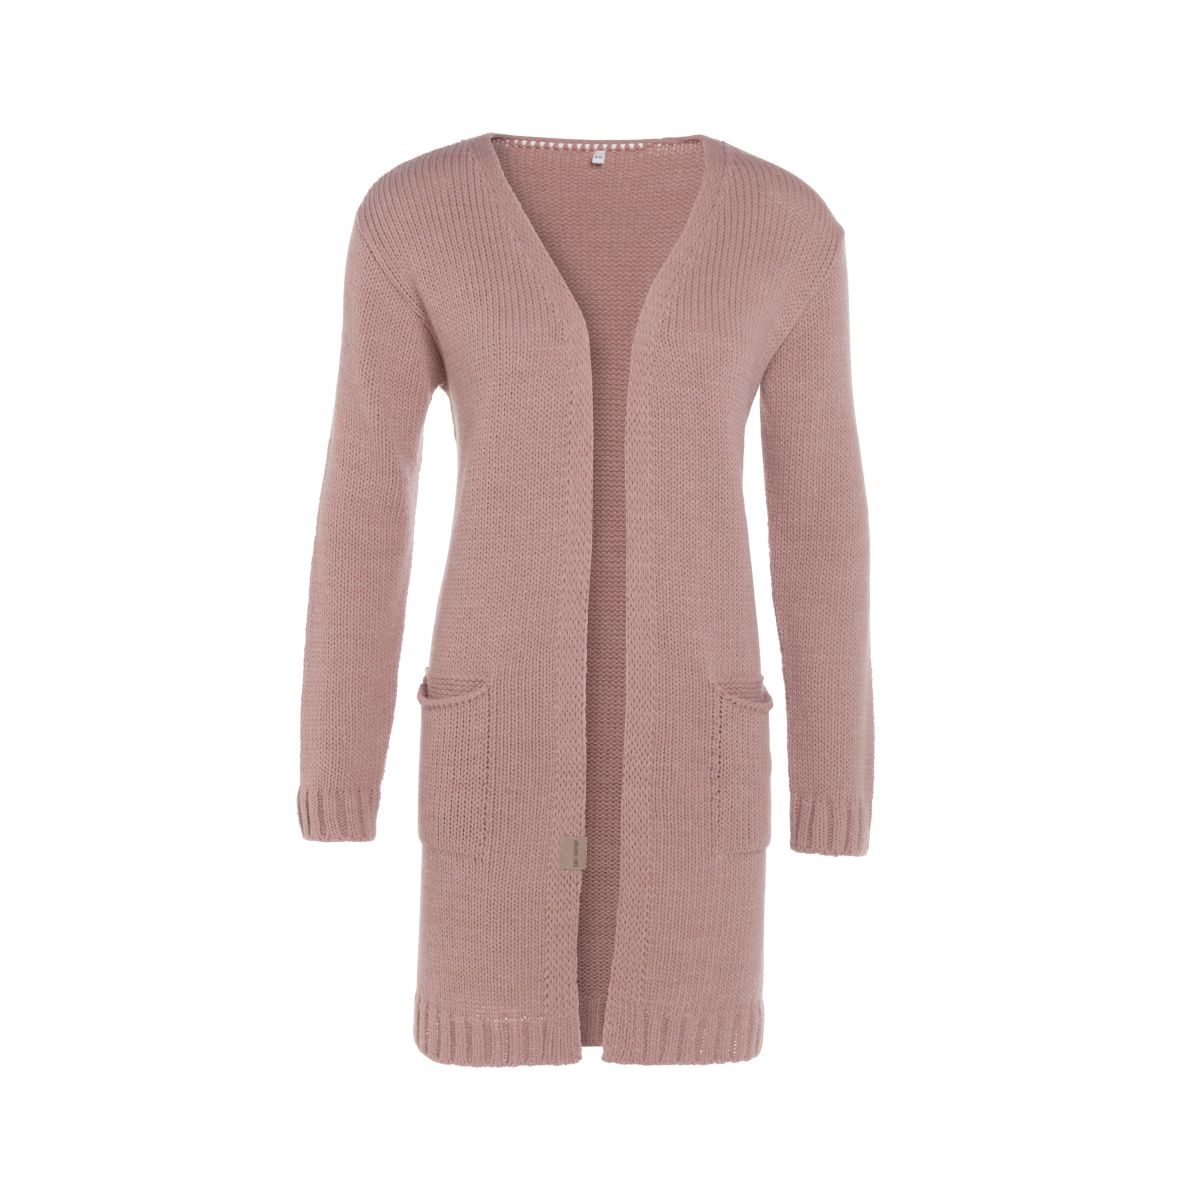 ruby knitted cardigan old pink 4042 with side pockets